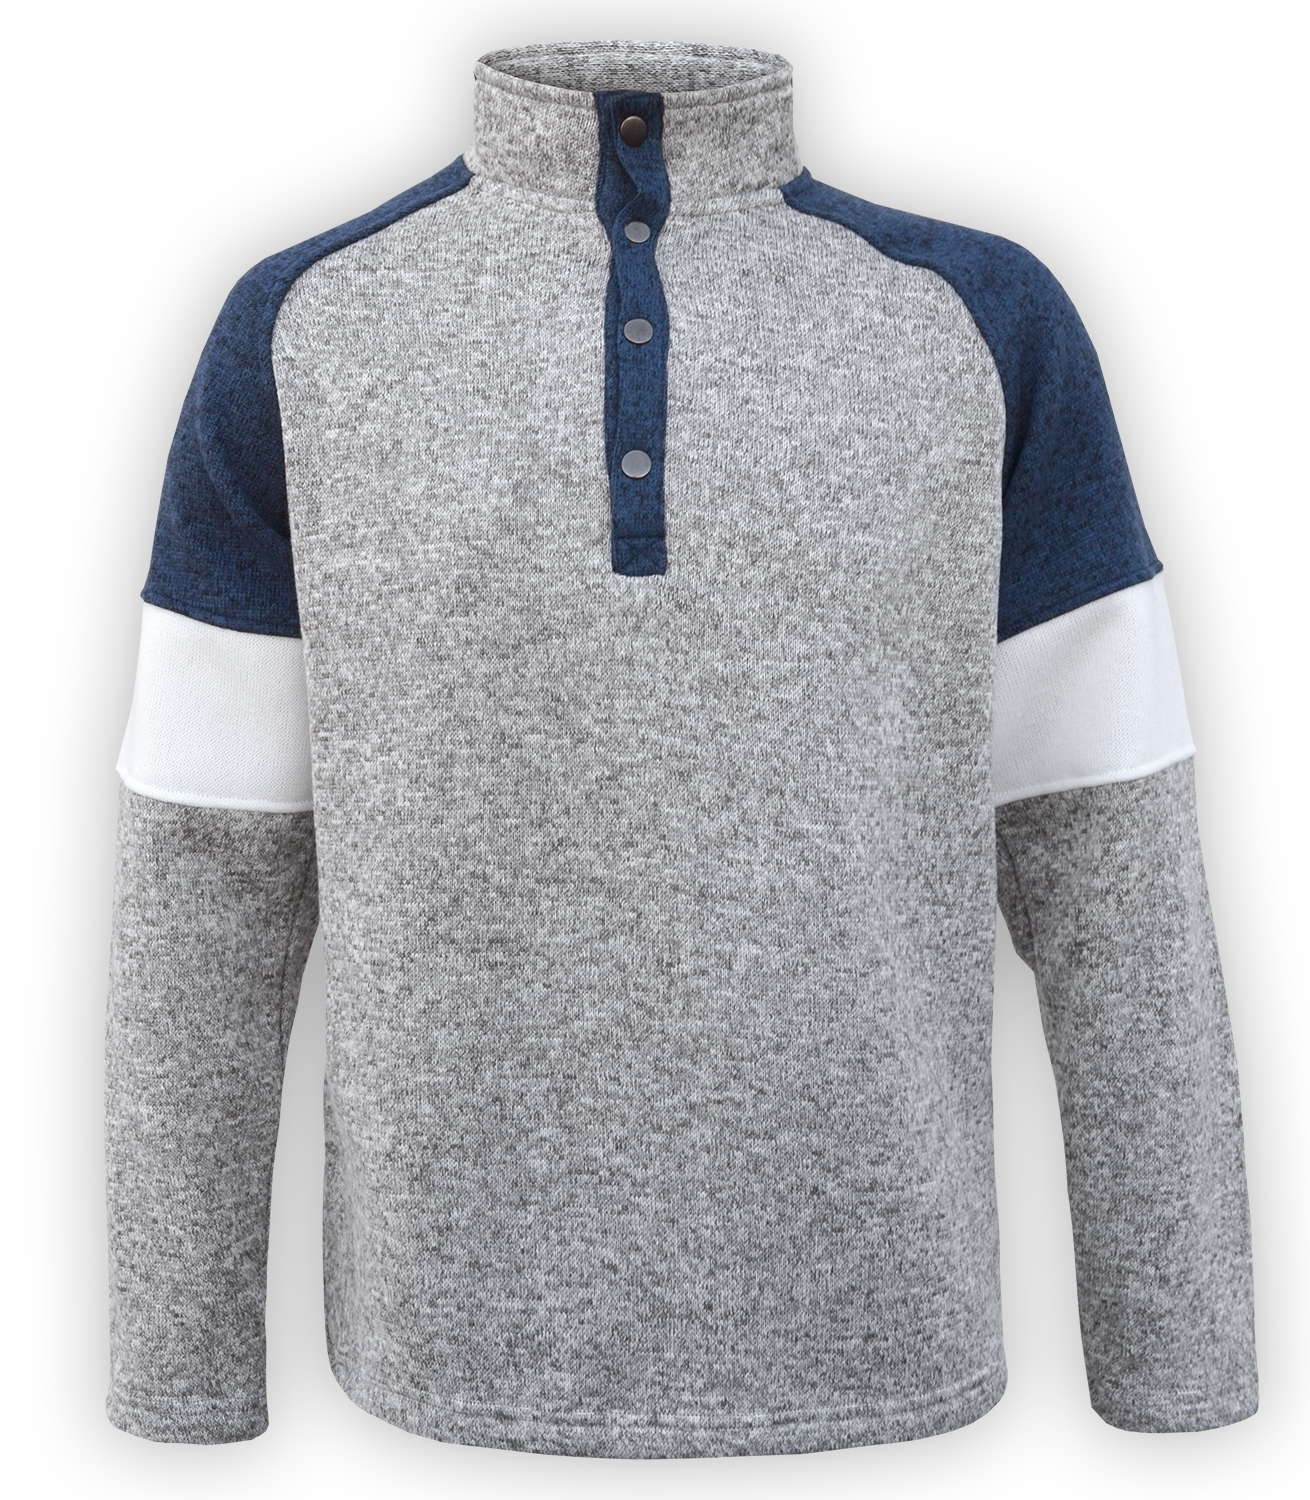 renegade men's north shore fleece snap pullover, tricolor, blue denim, gray sweater, slat & pepper, stand up collar,